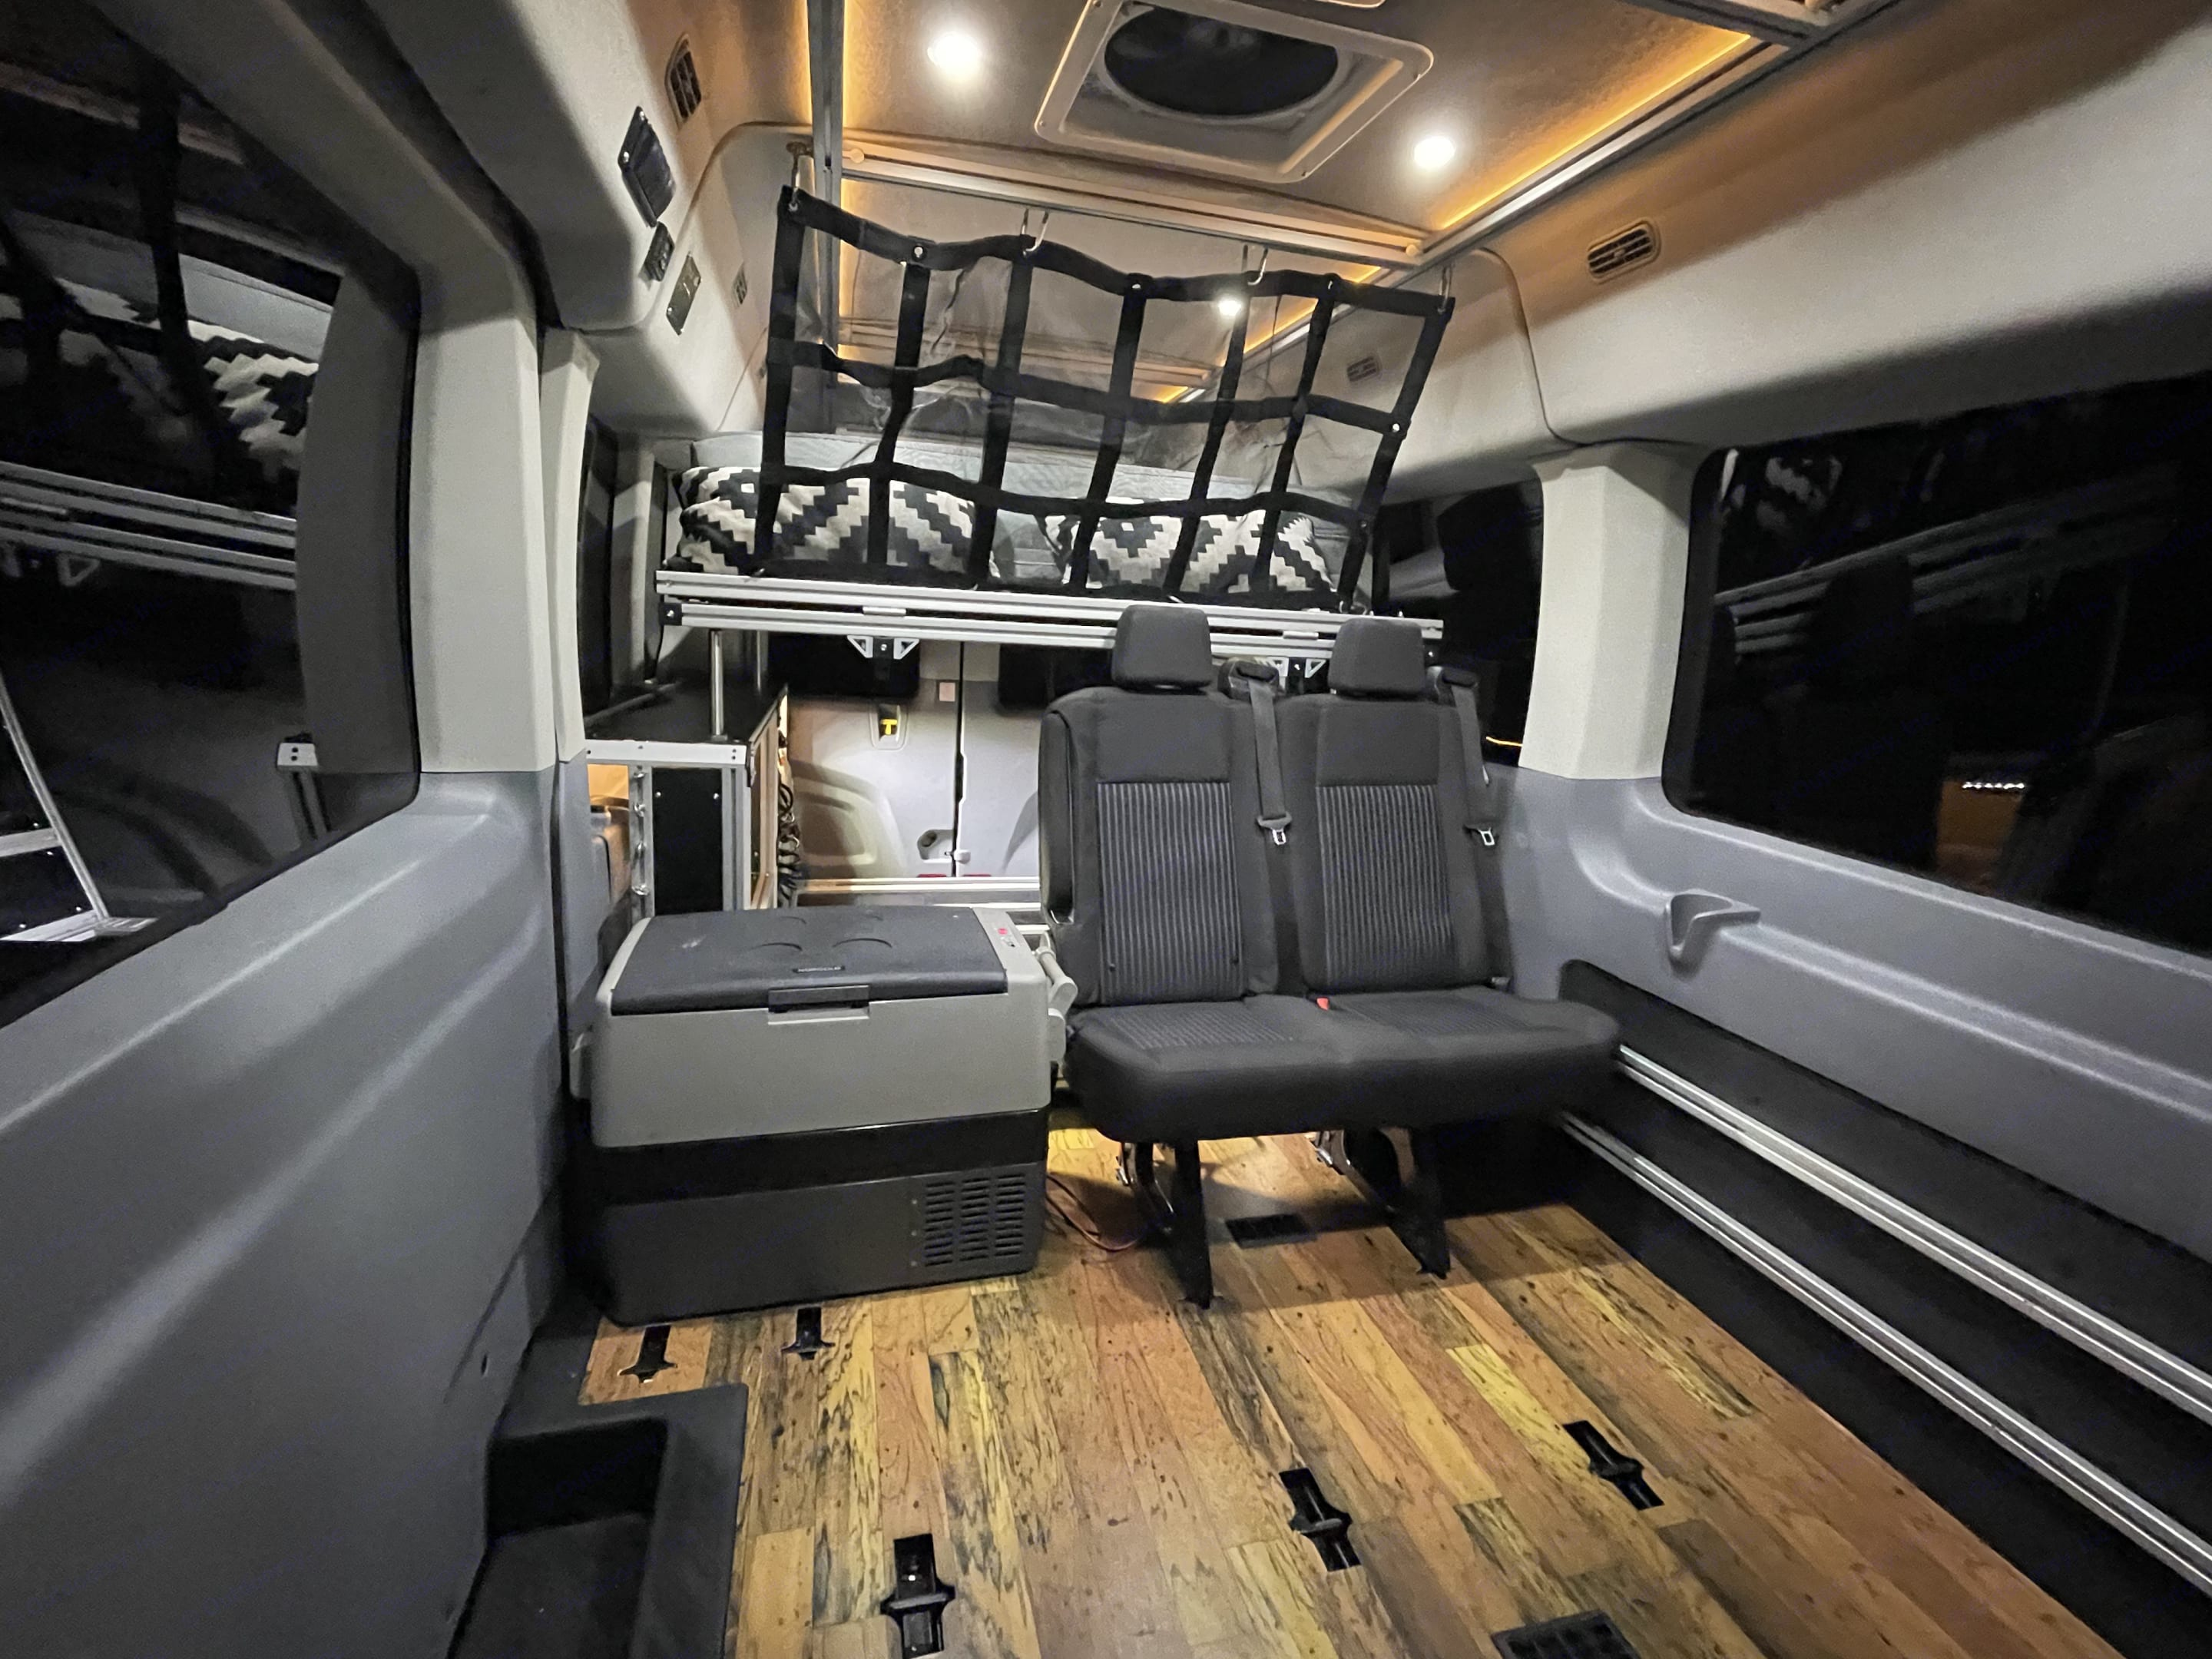 To show a bit of the versatility, we pulled out a seat and put our electric cooler in that is running off the van's power to keep your food and drinks nice and chilly with no need for ice!. Ford Custom Transit VanDOit Adventure Van 2019